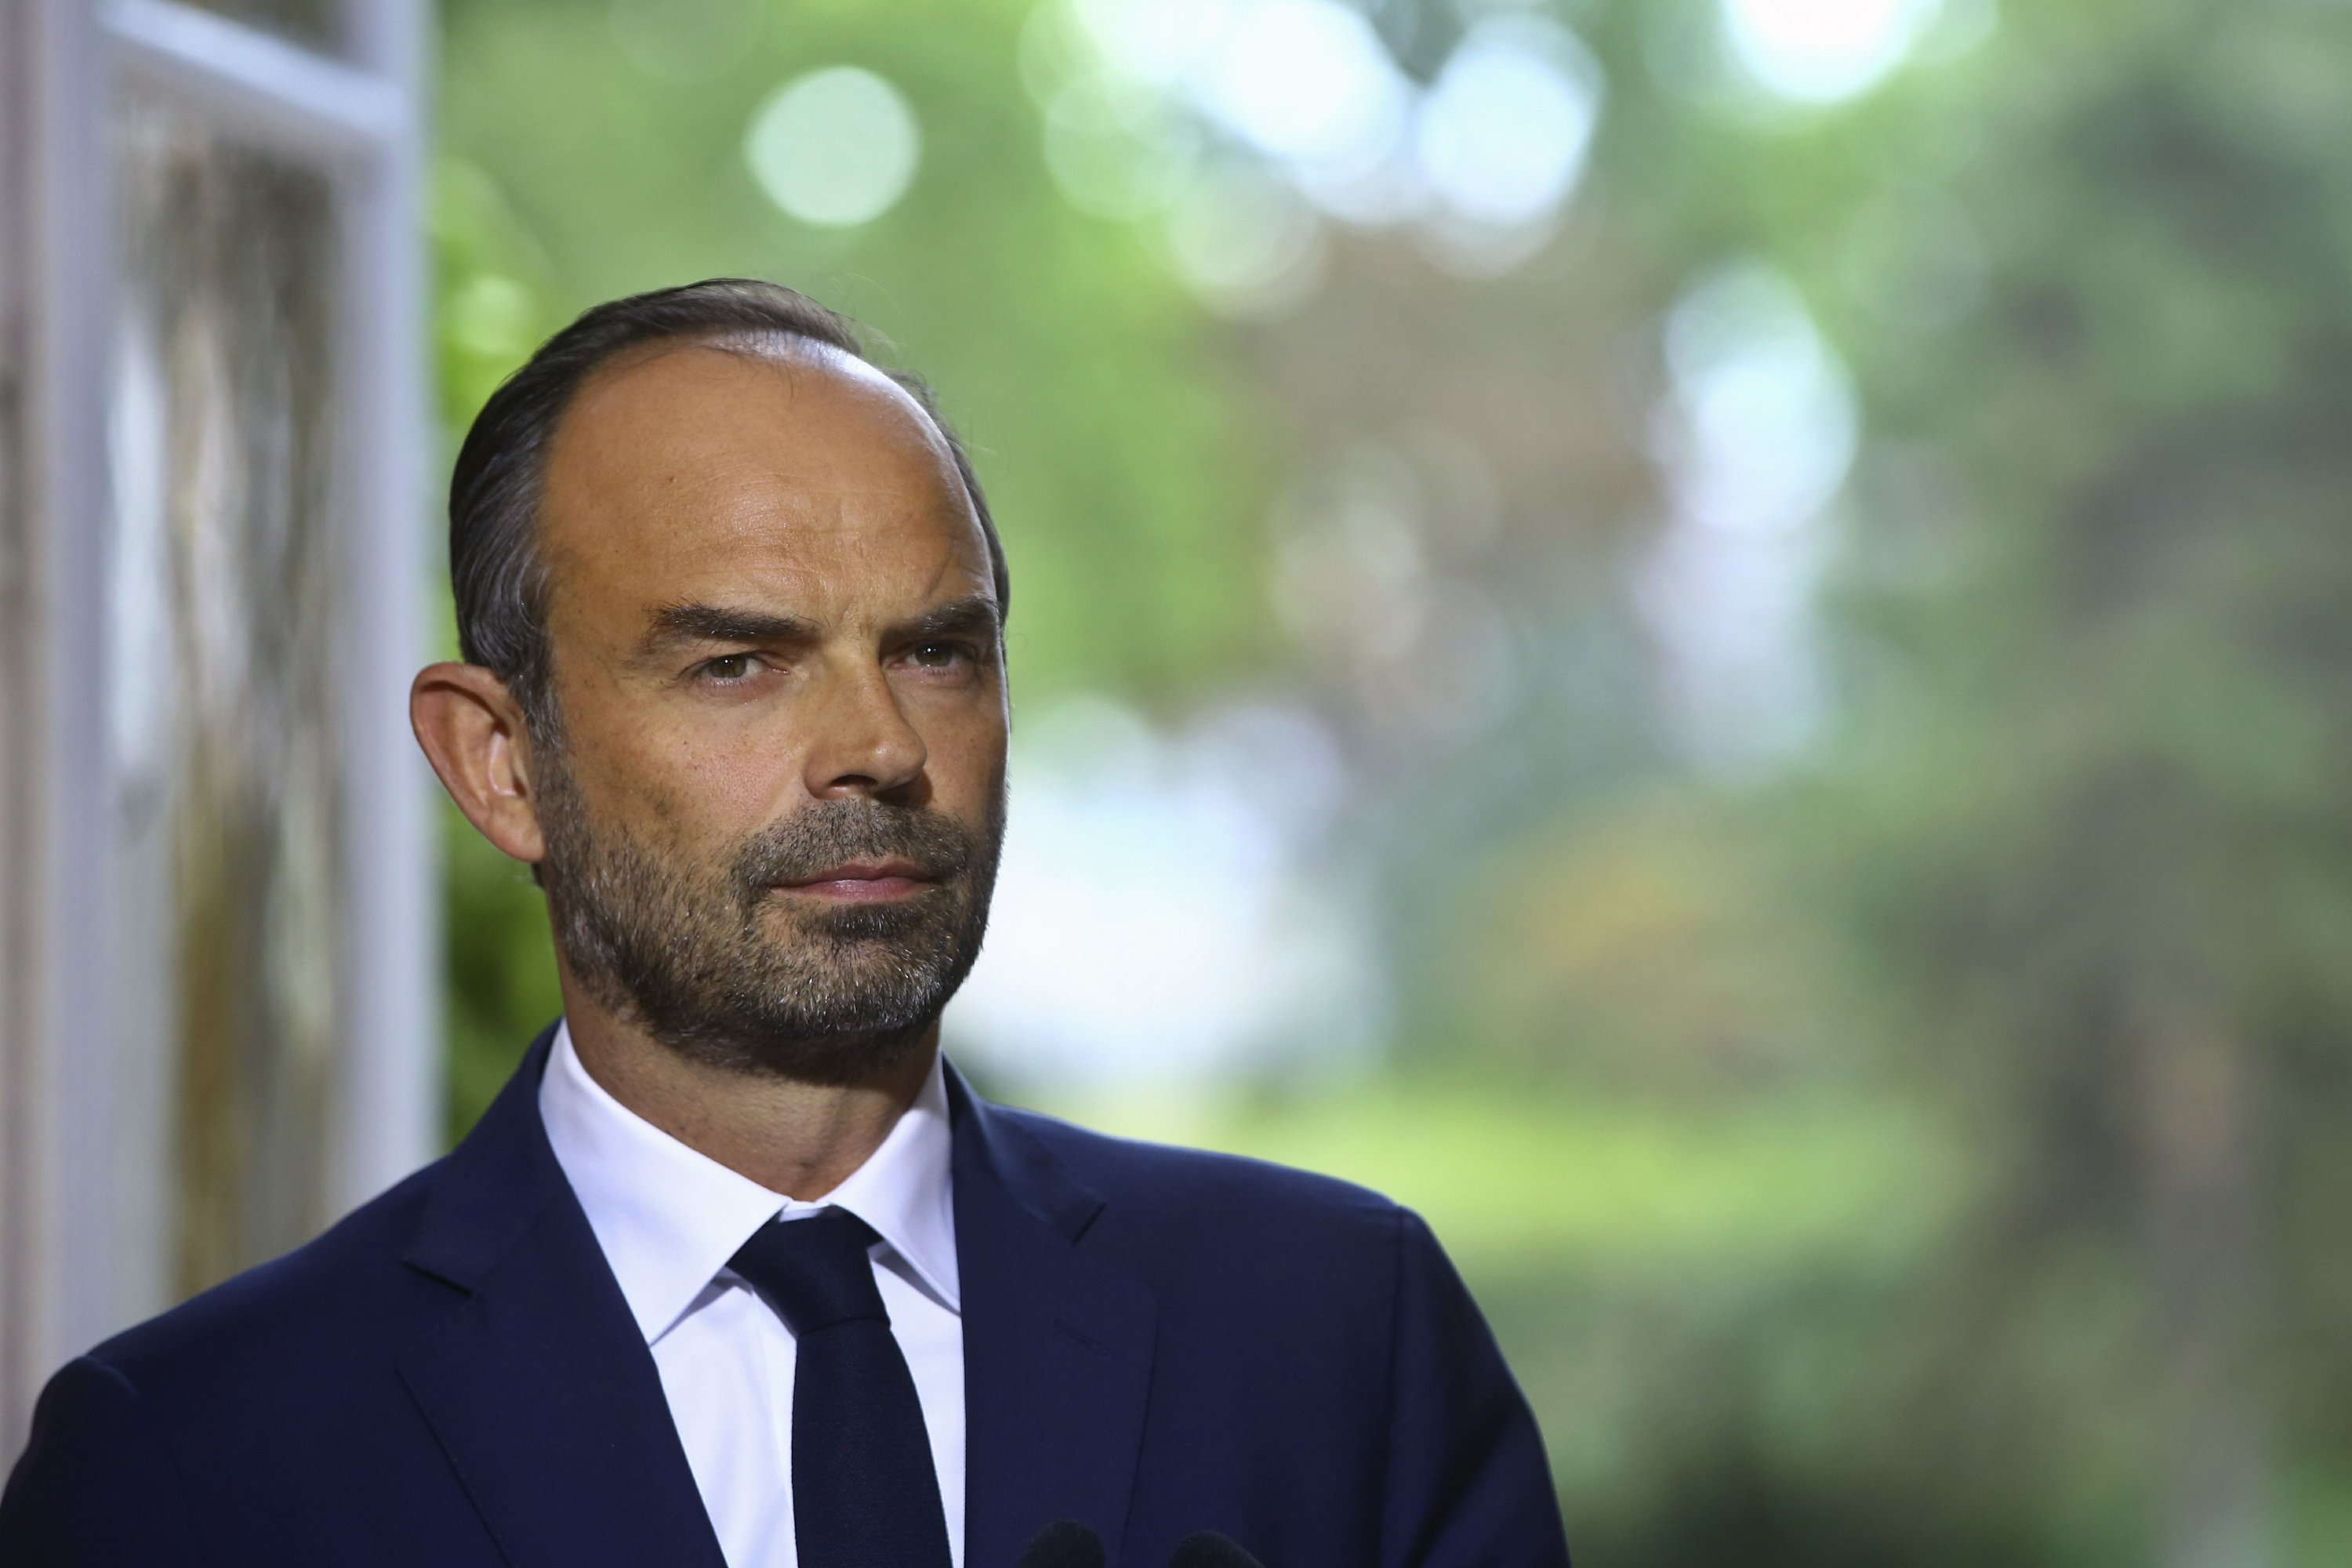 French labor law changes will make it easier to hire, fire